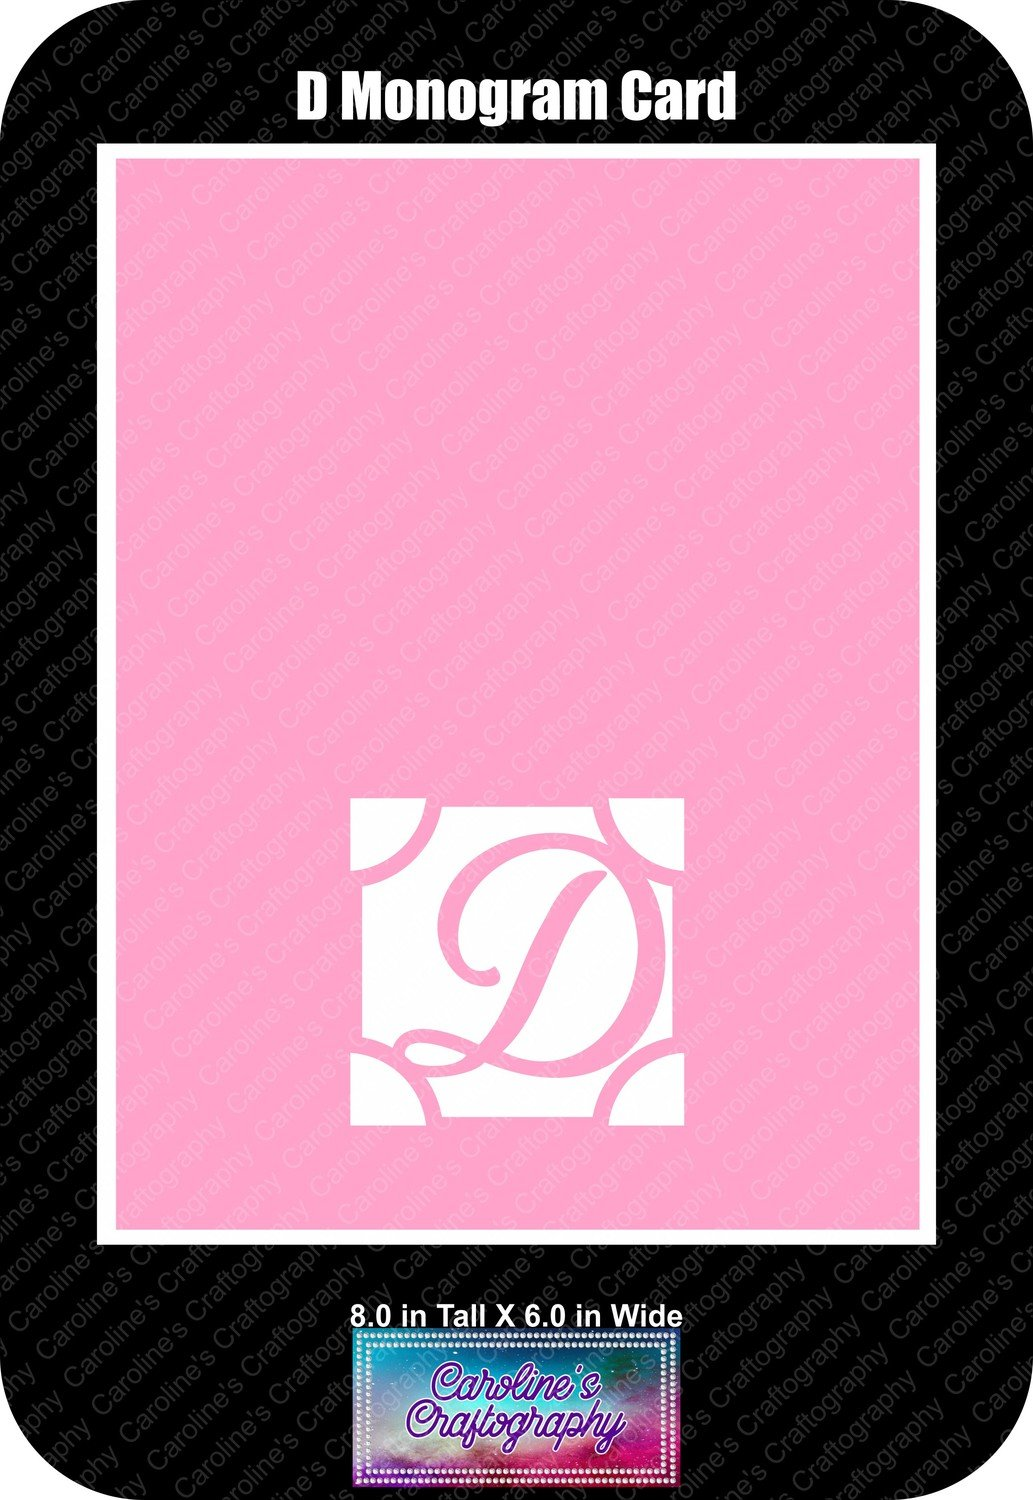 D Monogram Card Base